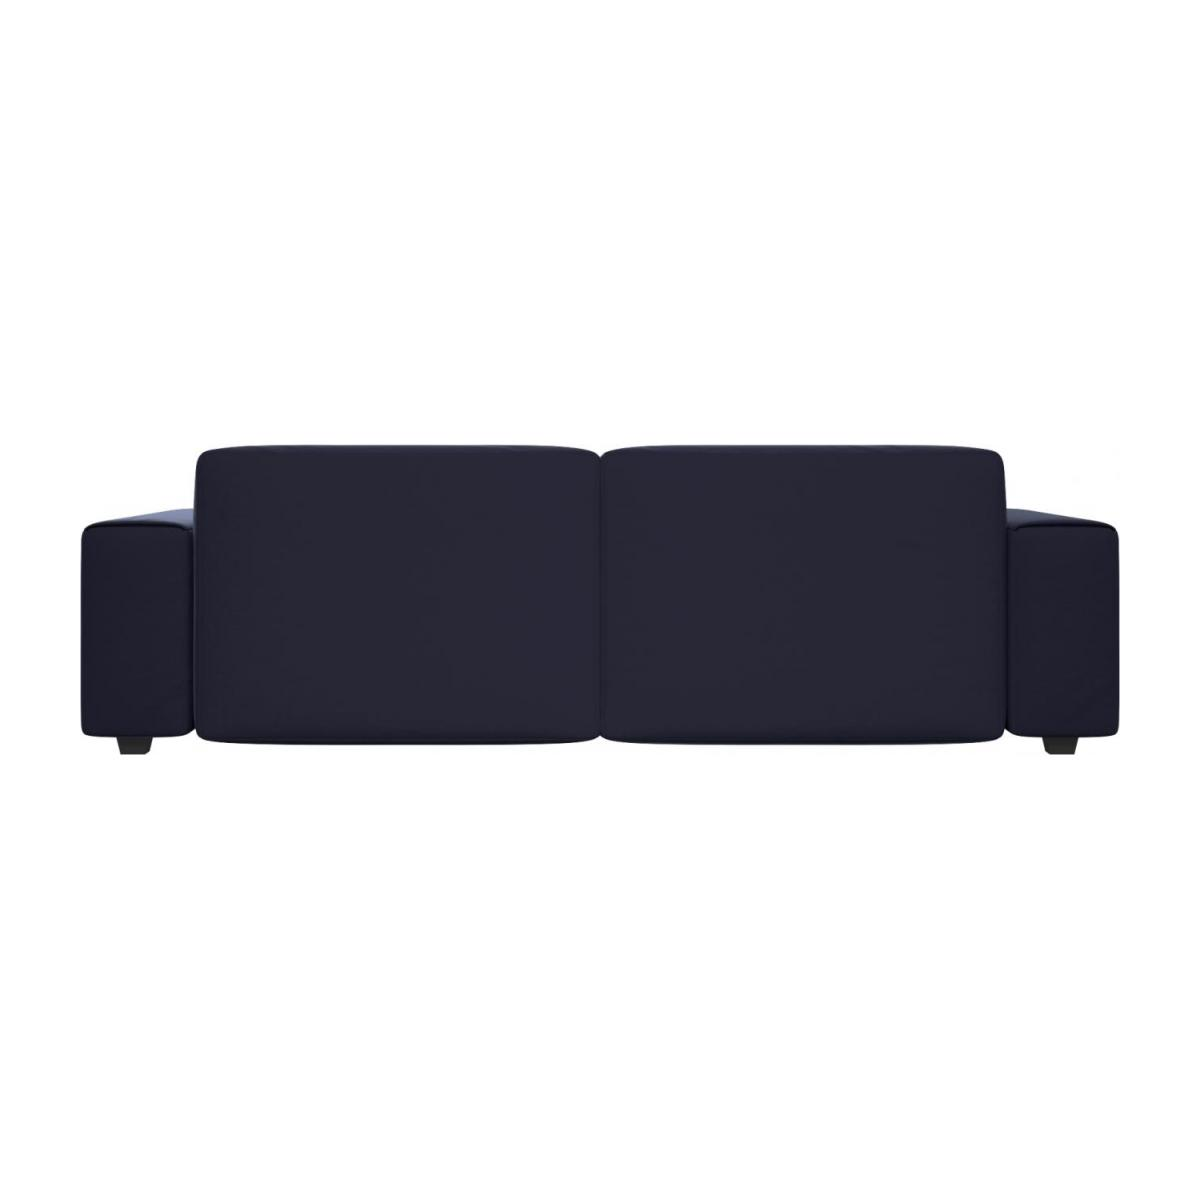 4 seater sofa in Super Velvet fabric, dark blue n°3